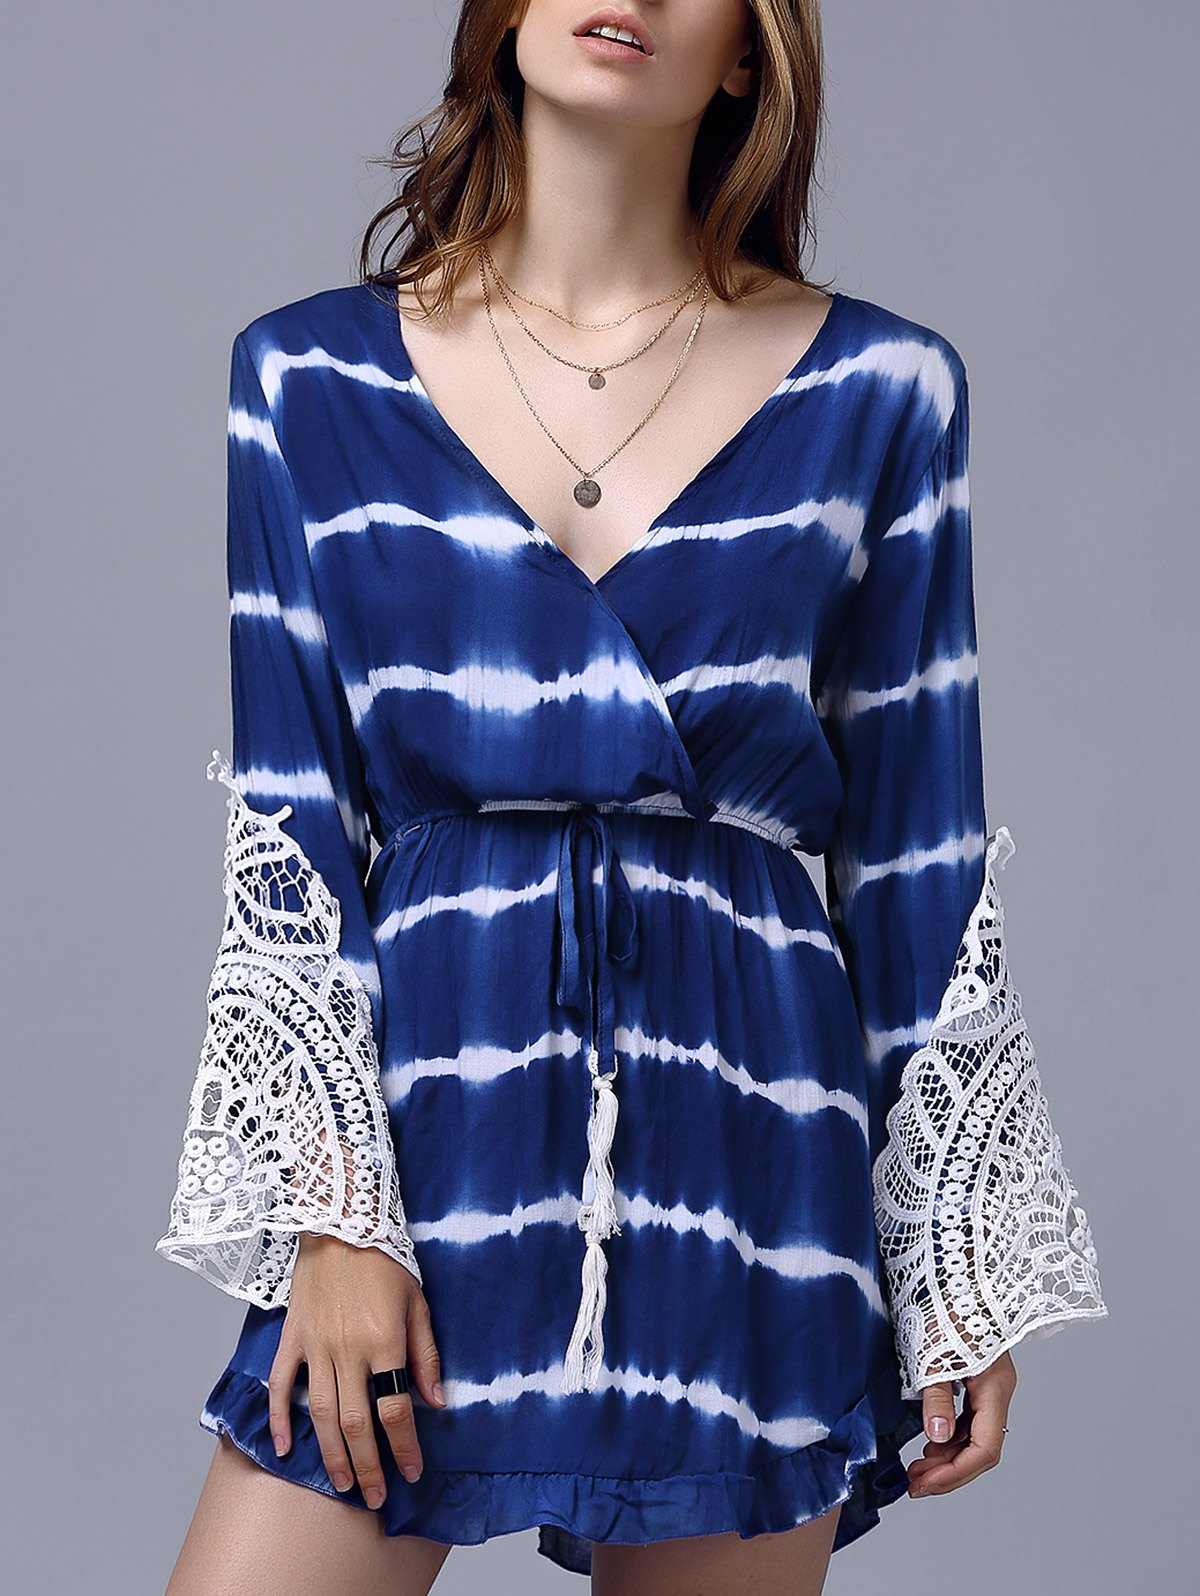 Lace Splice Plunging Neck Long Sleeve Dress 182318302